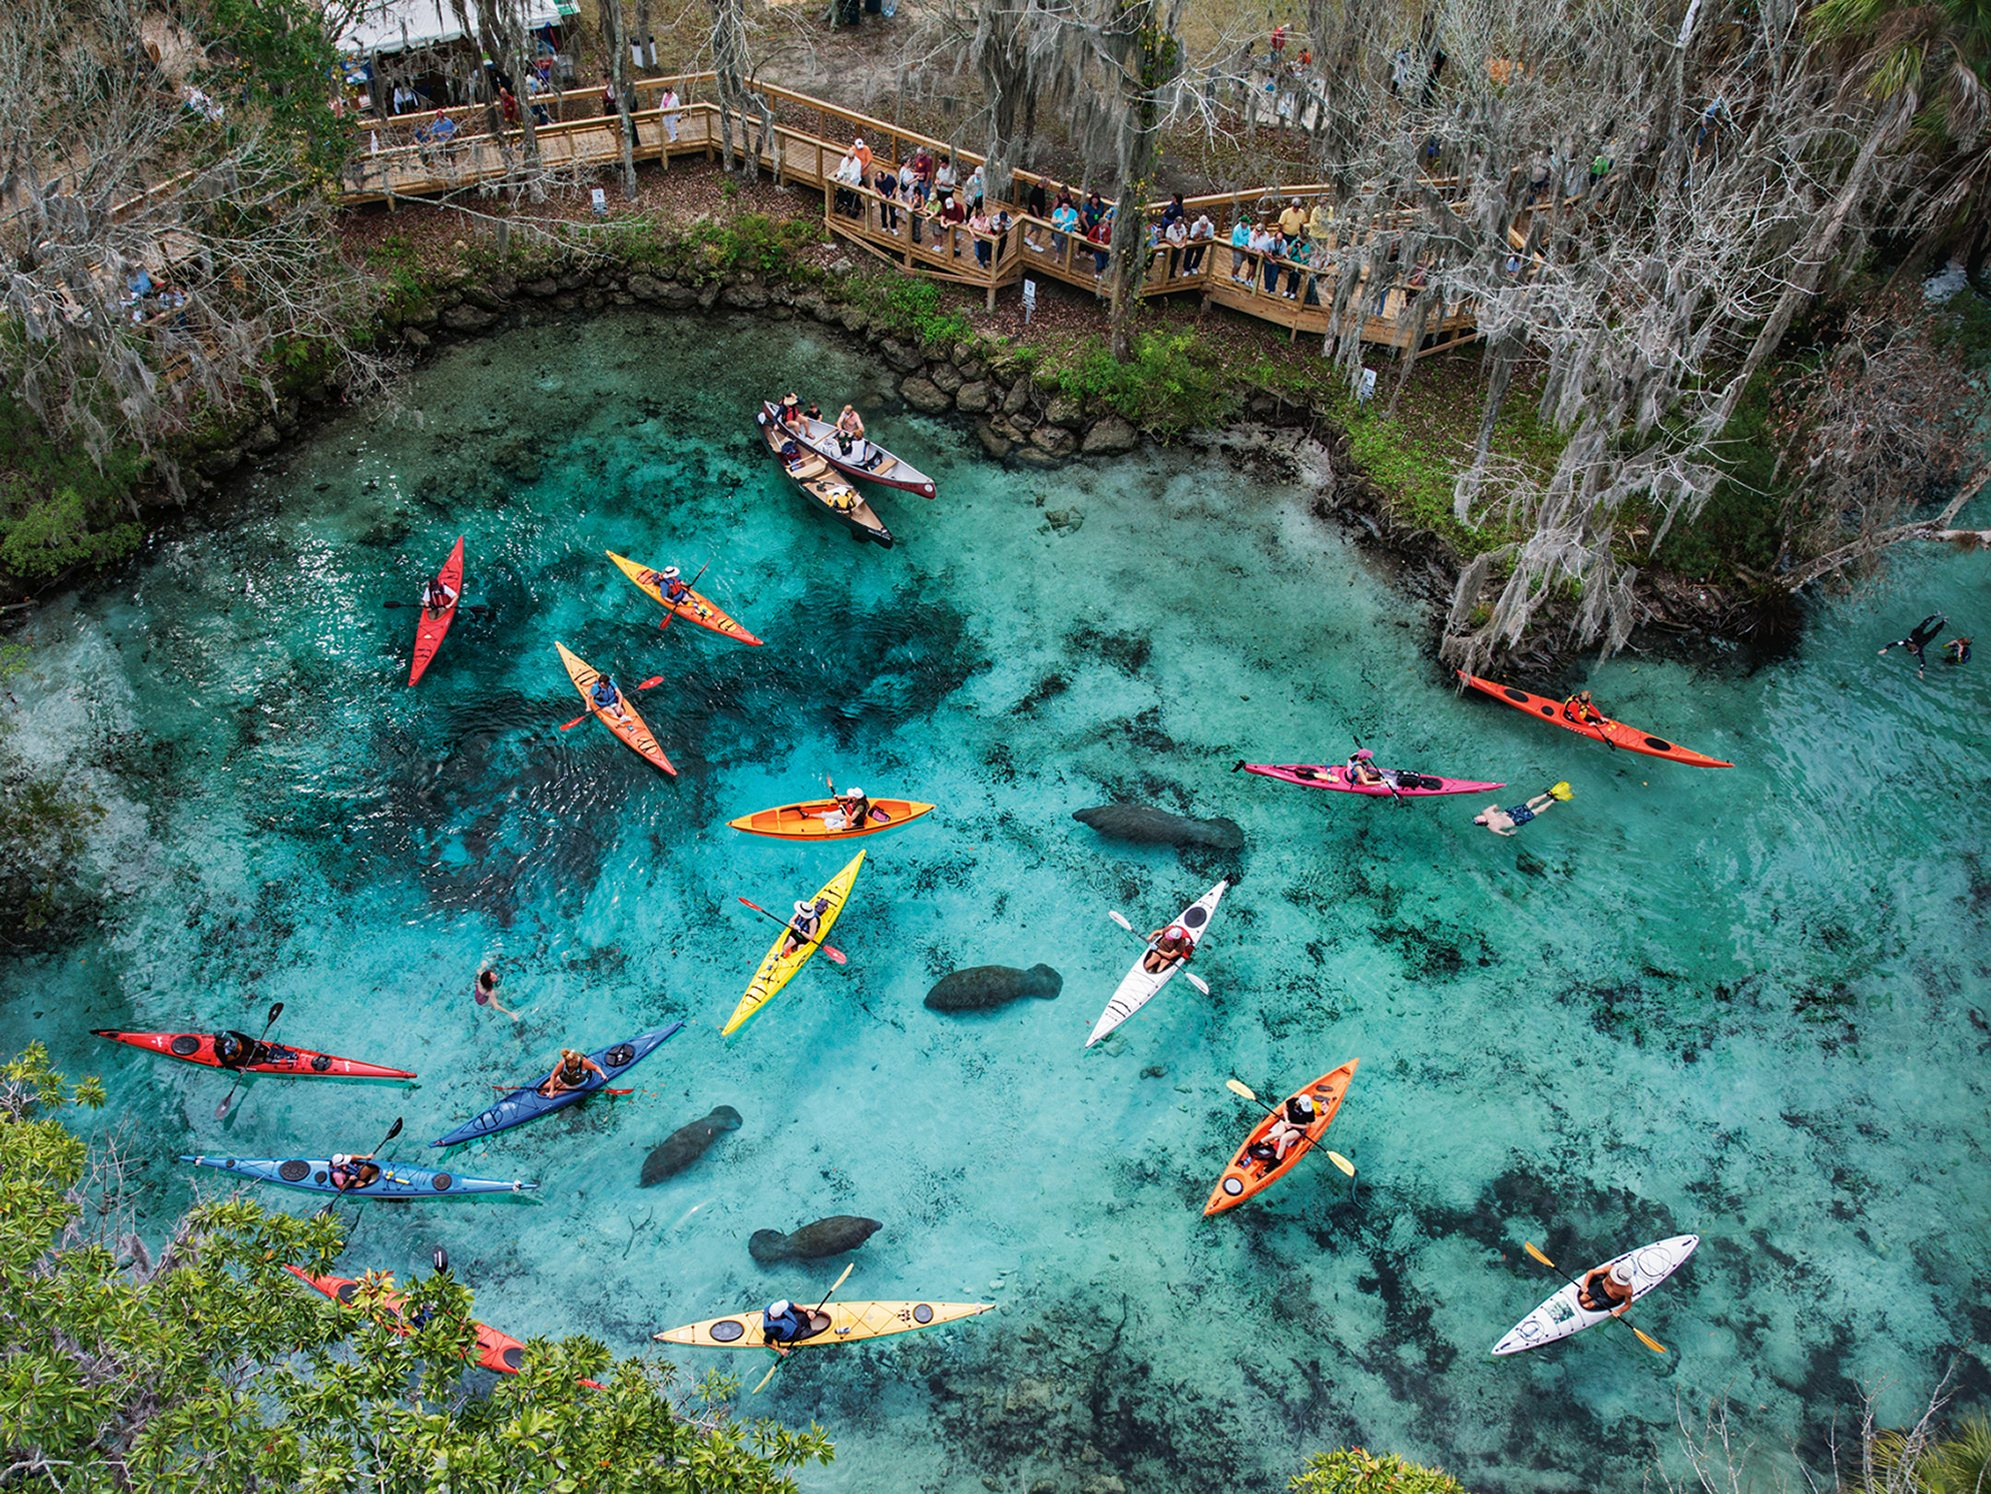 MM8086-120114-11500. Three Sisters Springs, Florida